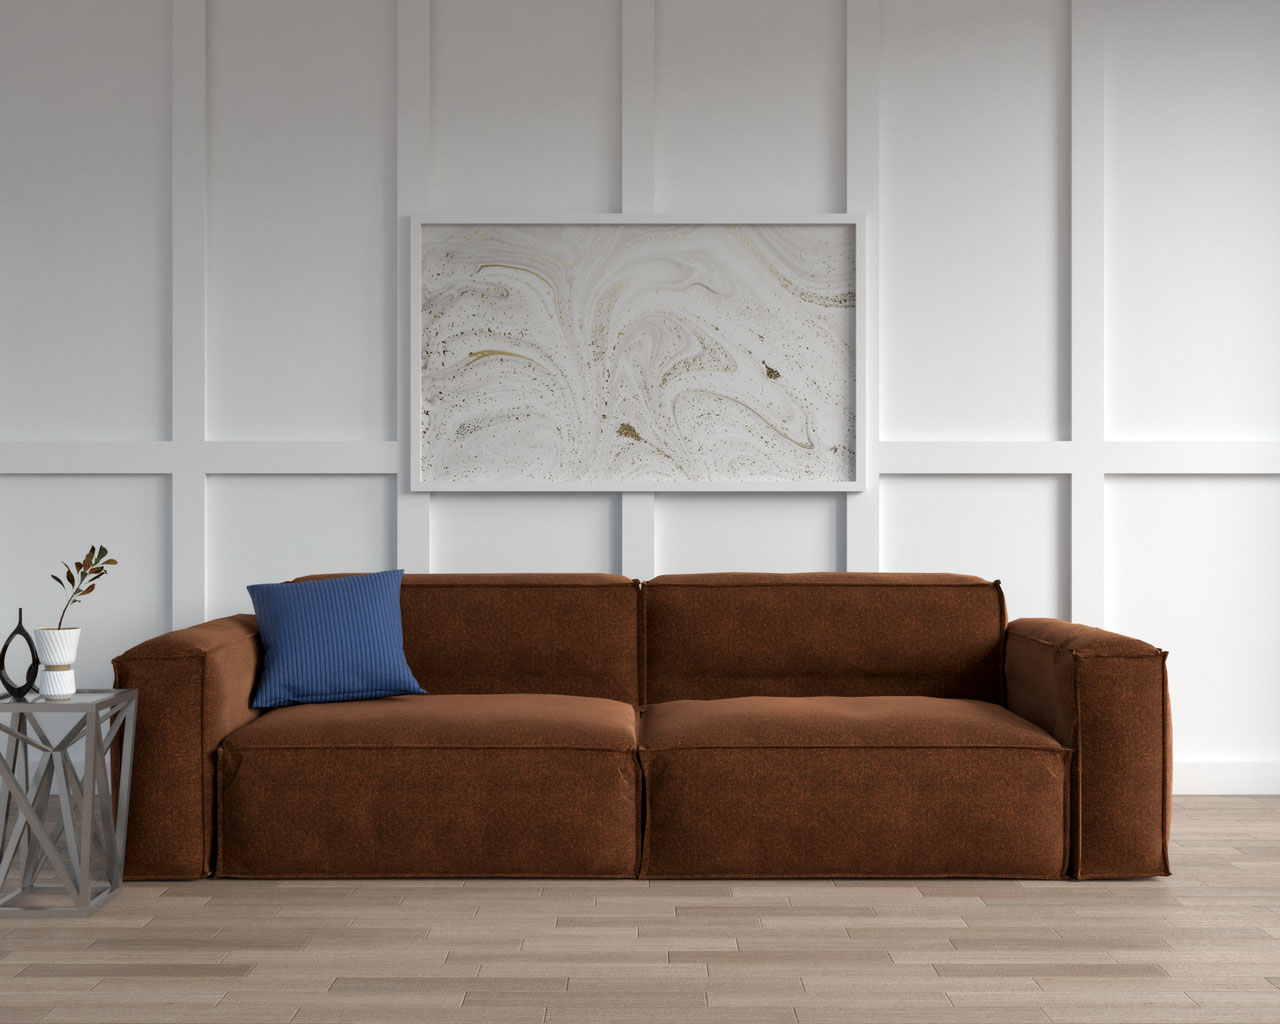 Brown sofa with navy pillow